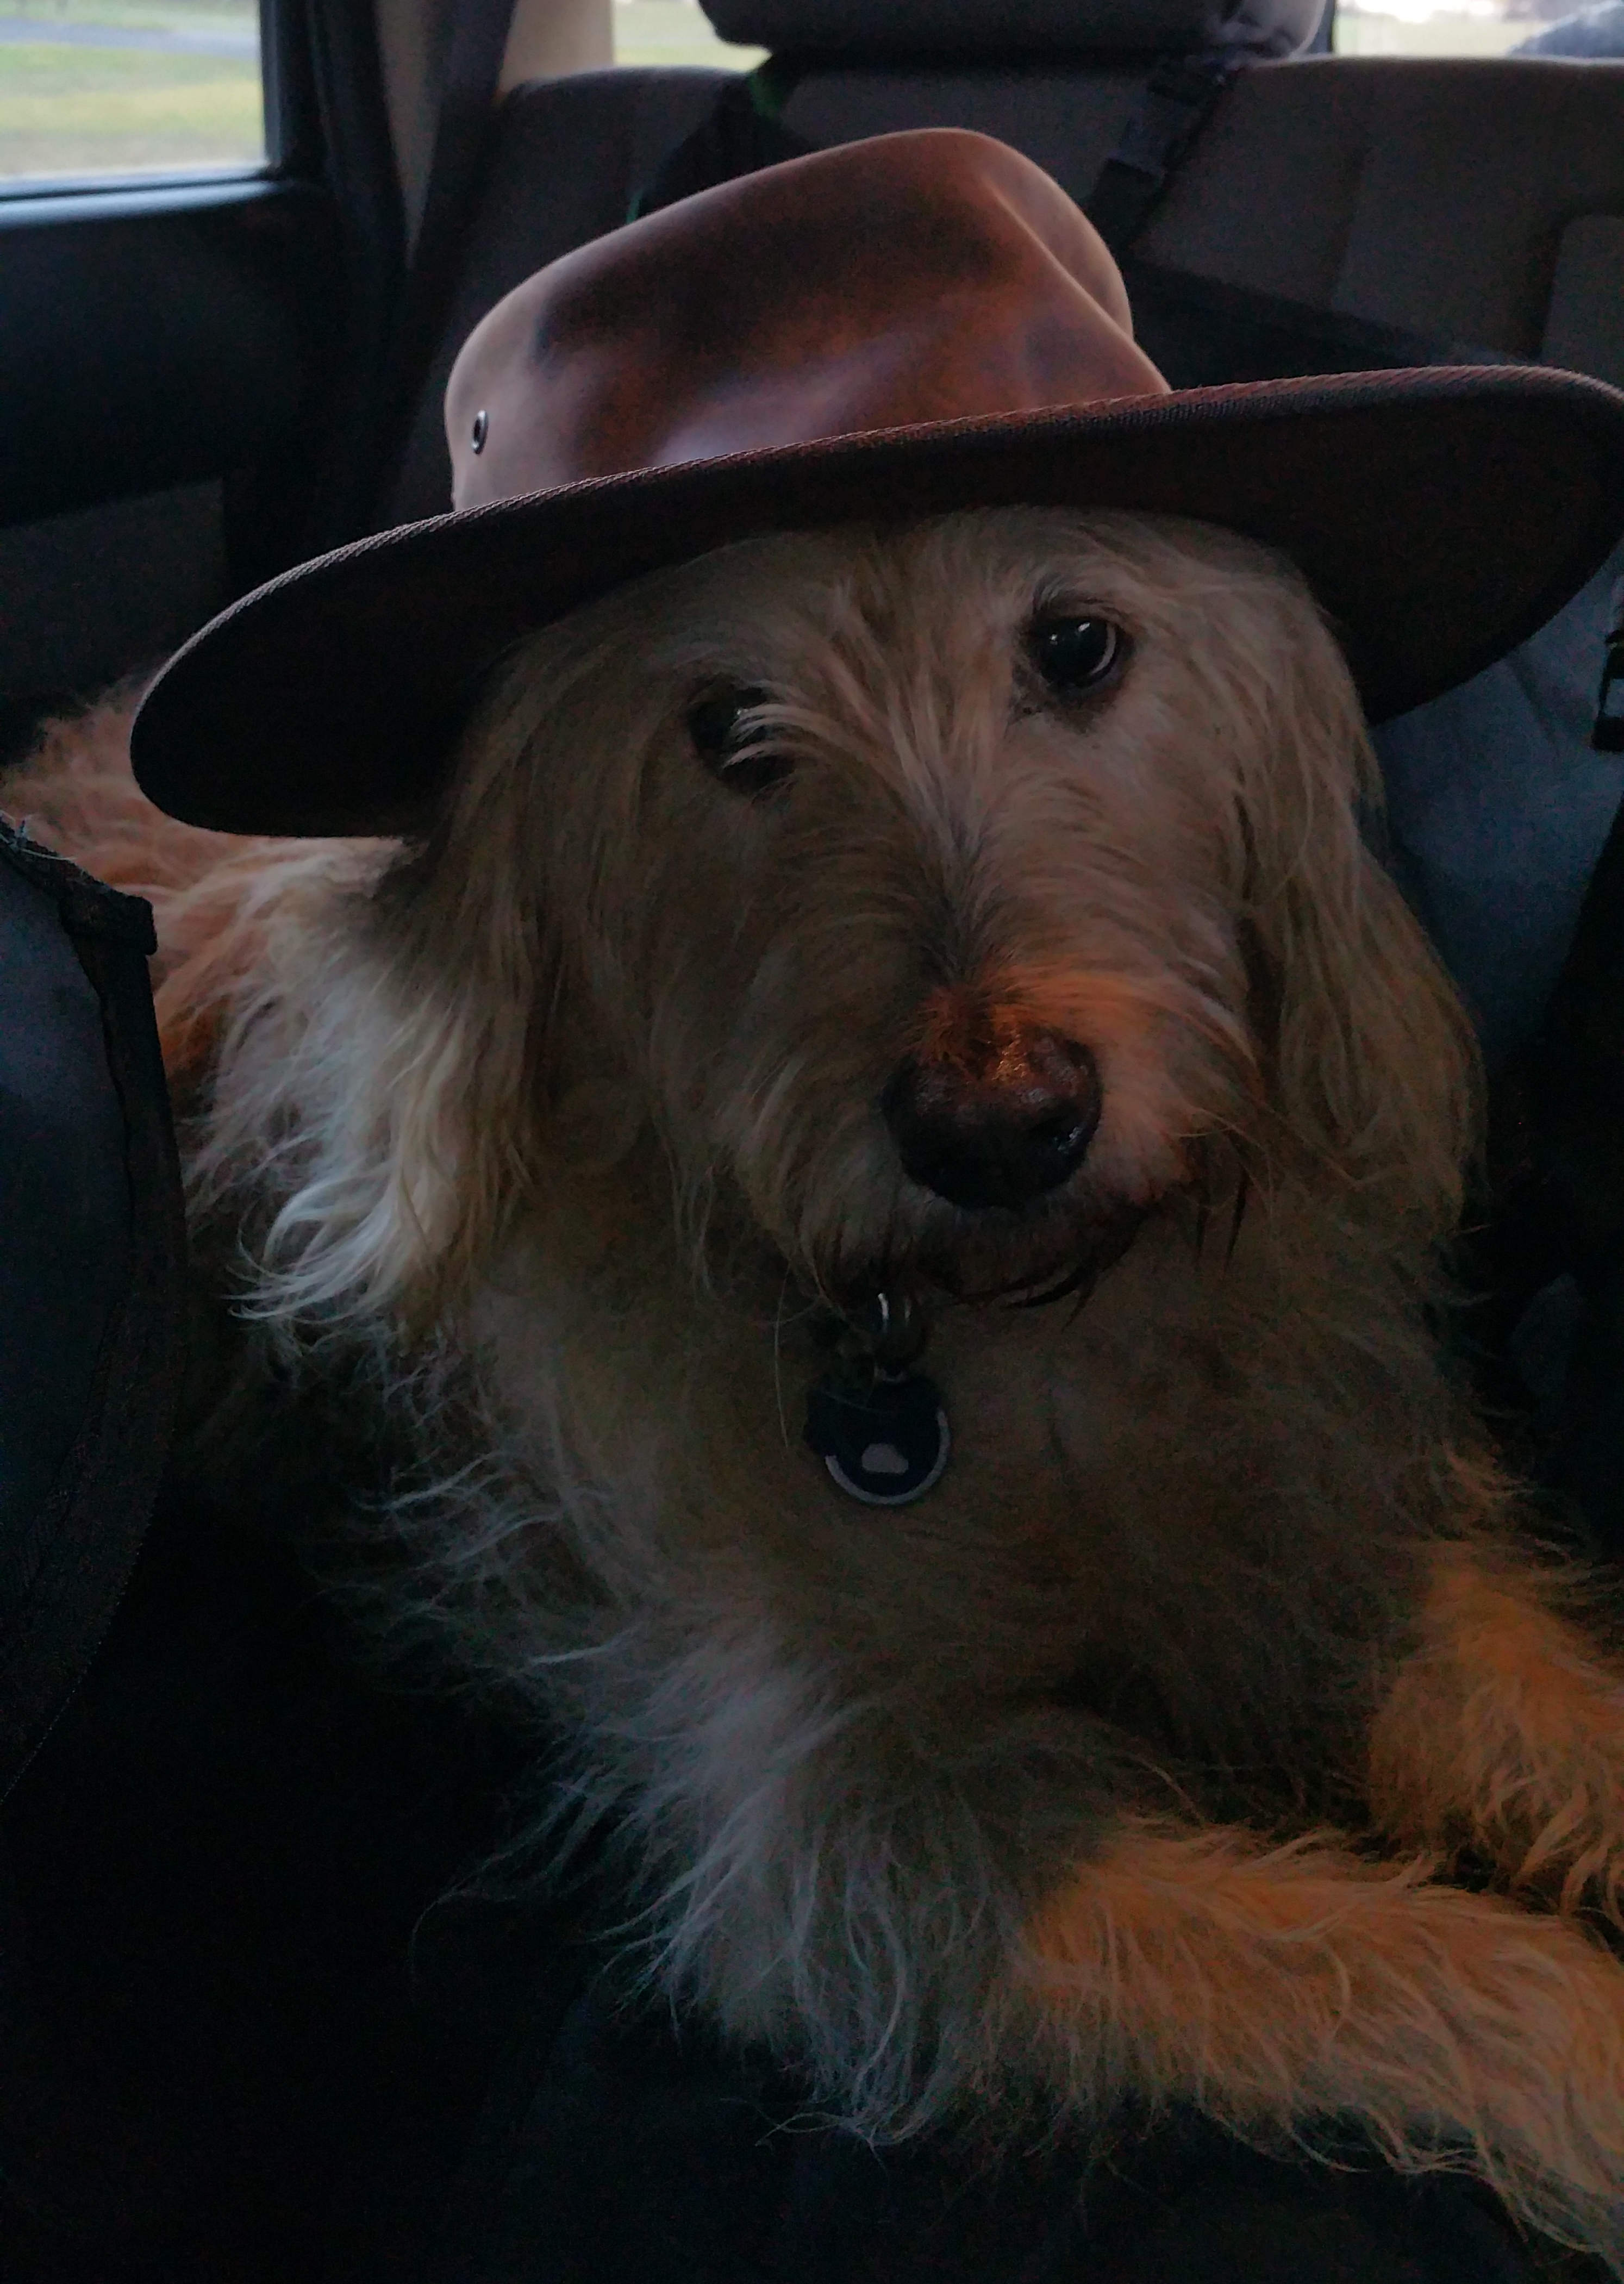 Even Pip has taken a shine to the hat